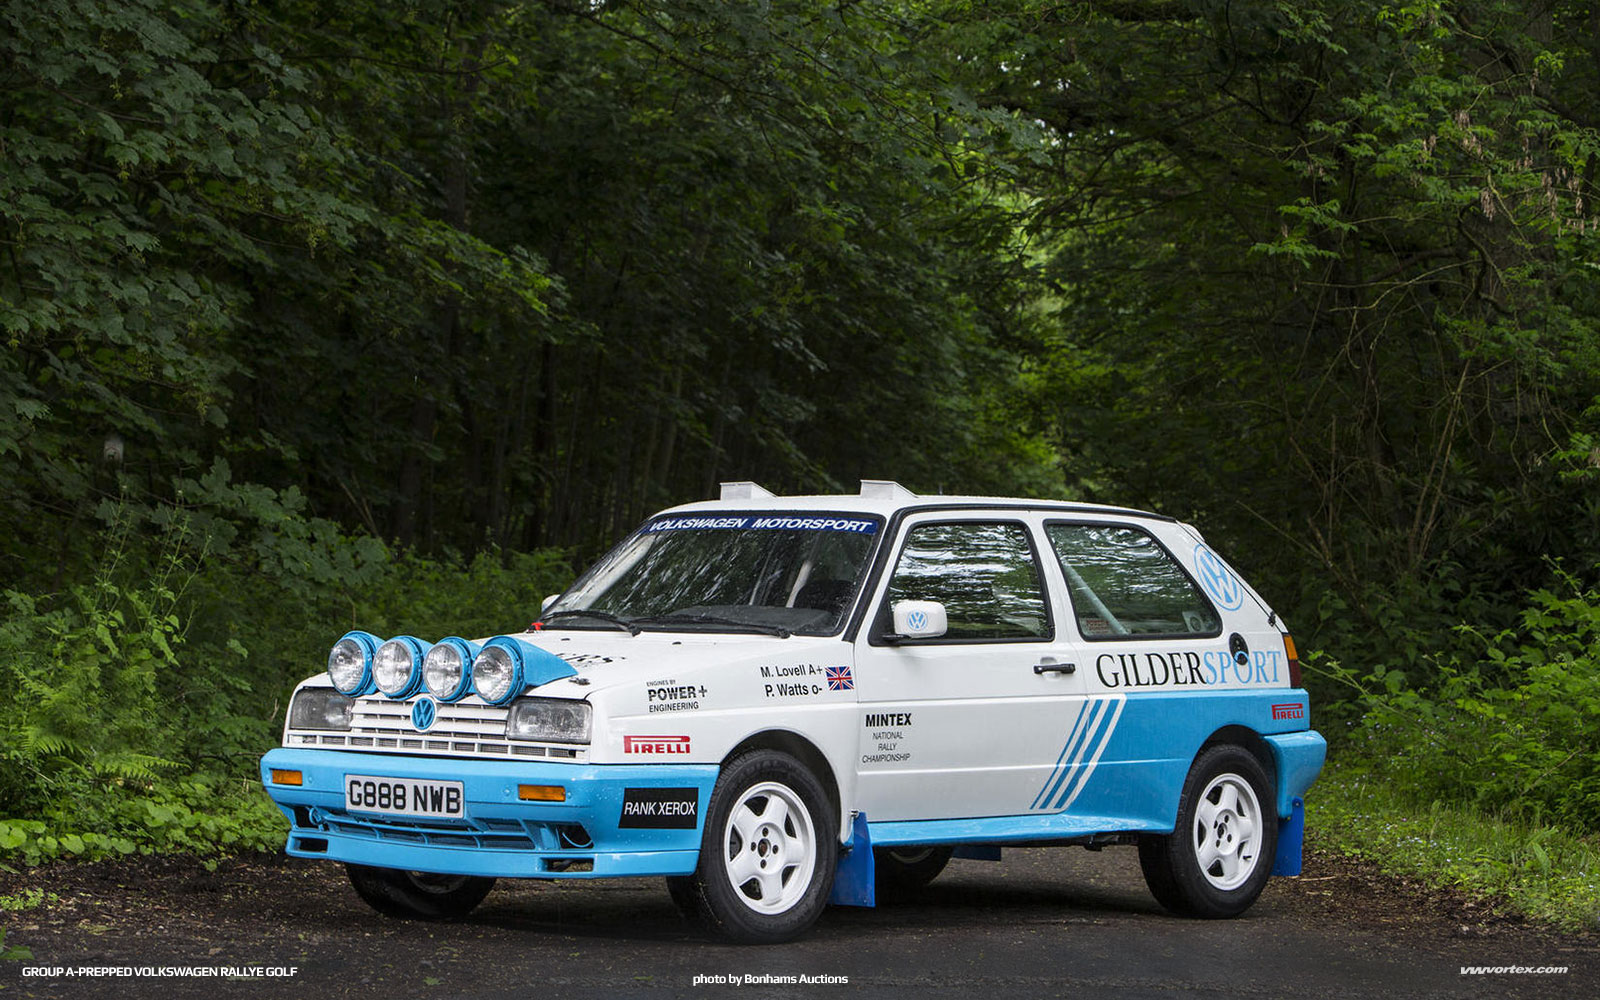 Volkswagen-Rallye-Golf-Group-A-7